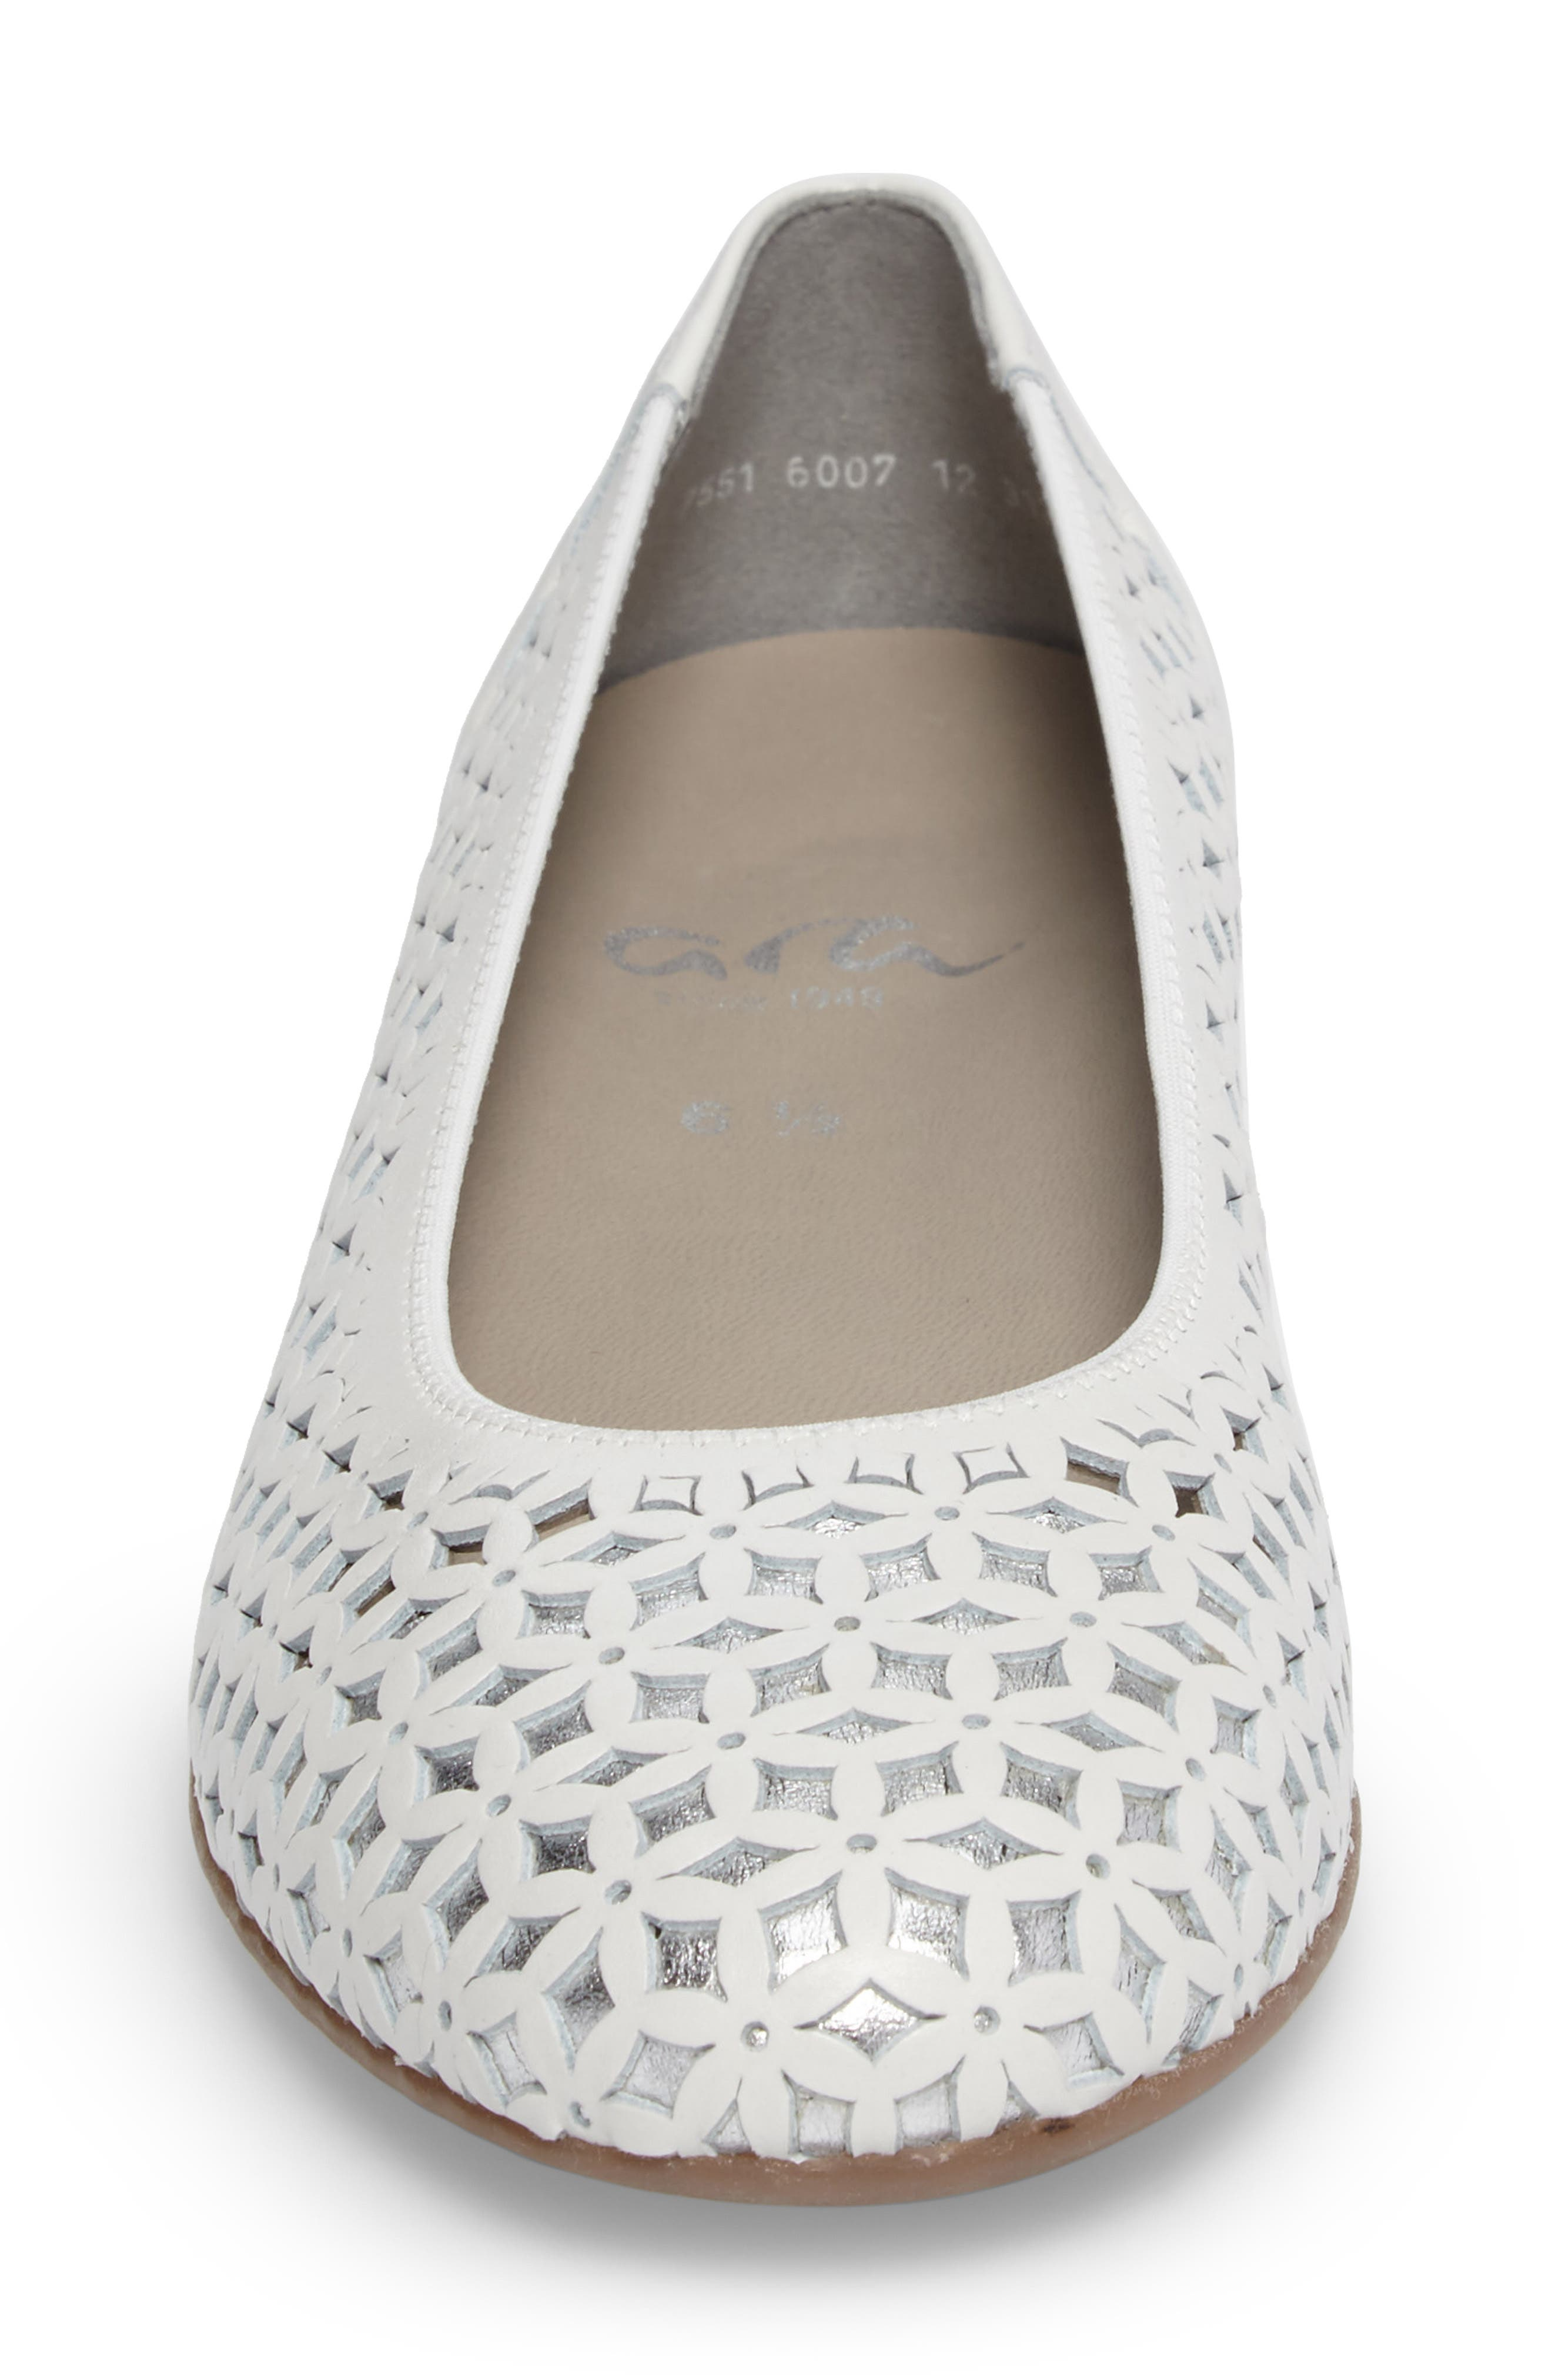 Stephanie Perforated Ballet Flat,                             Alternate thumbnail 4, color,                             101